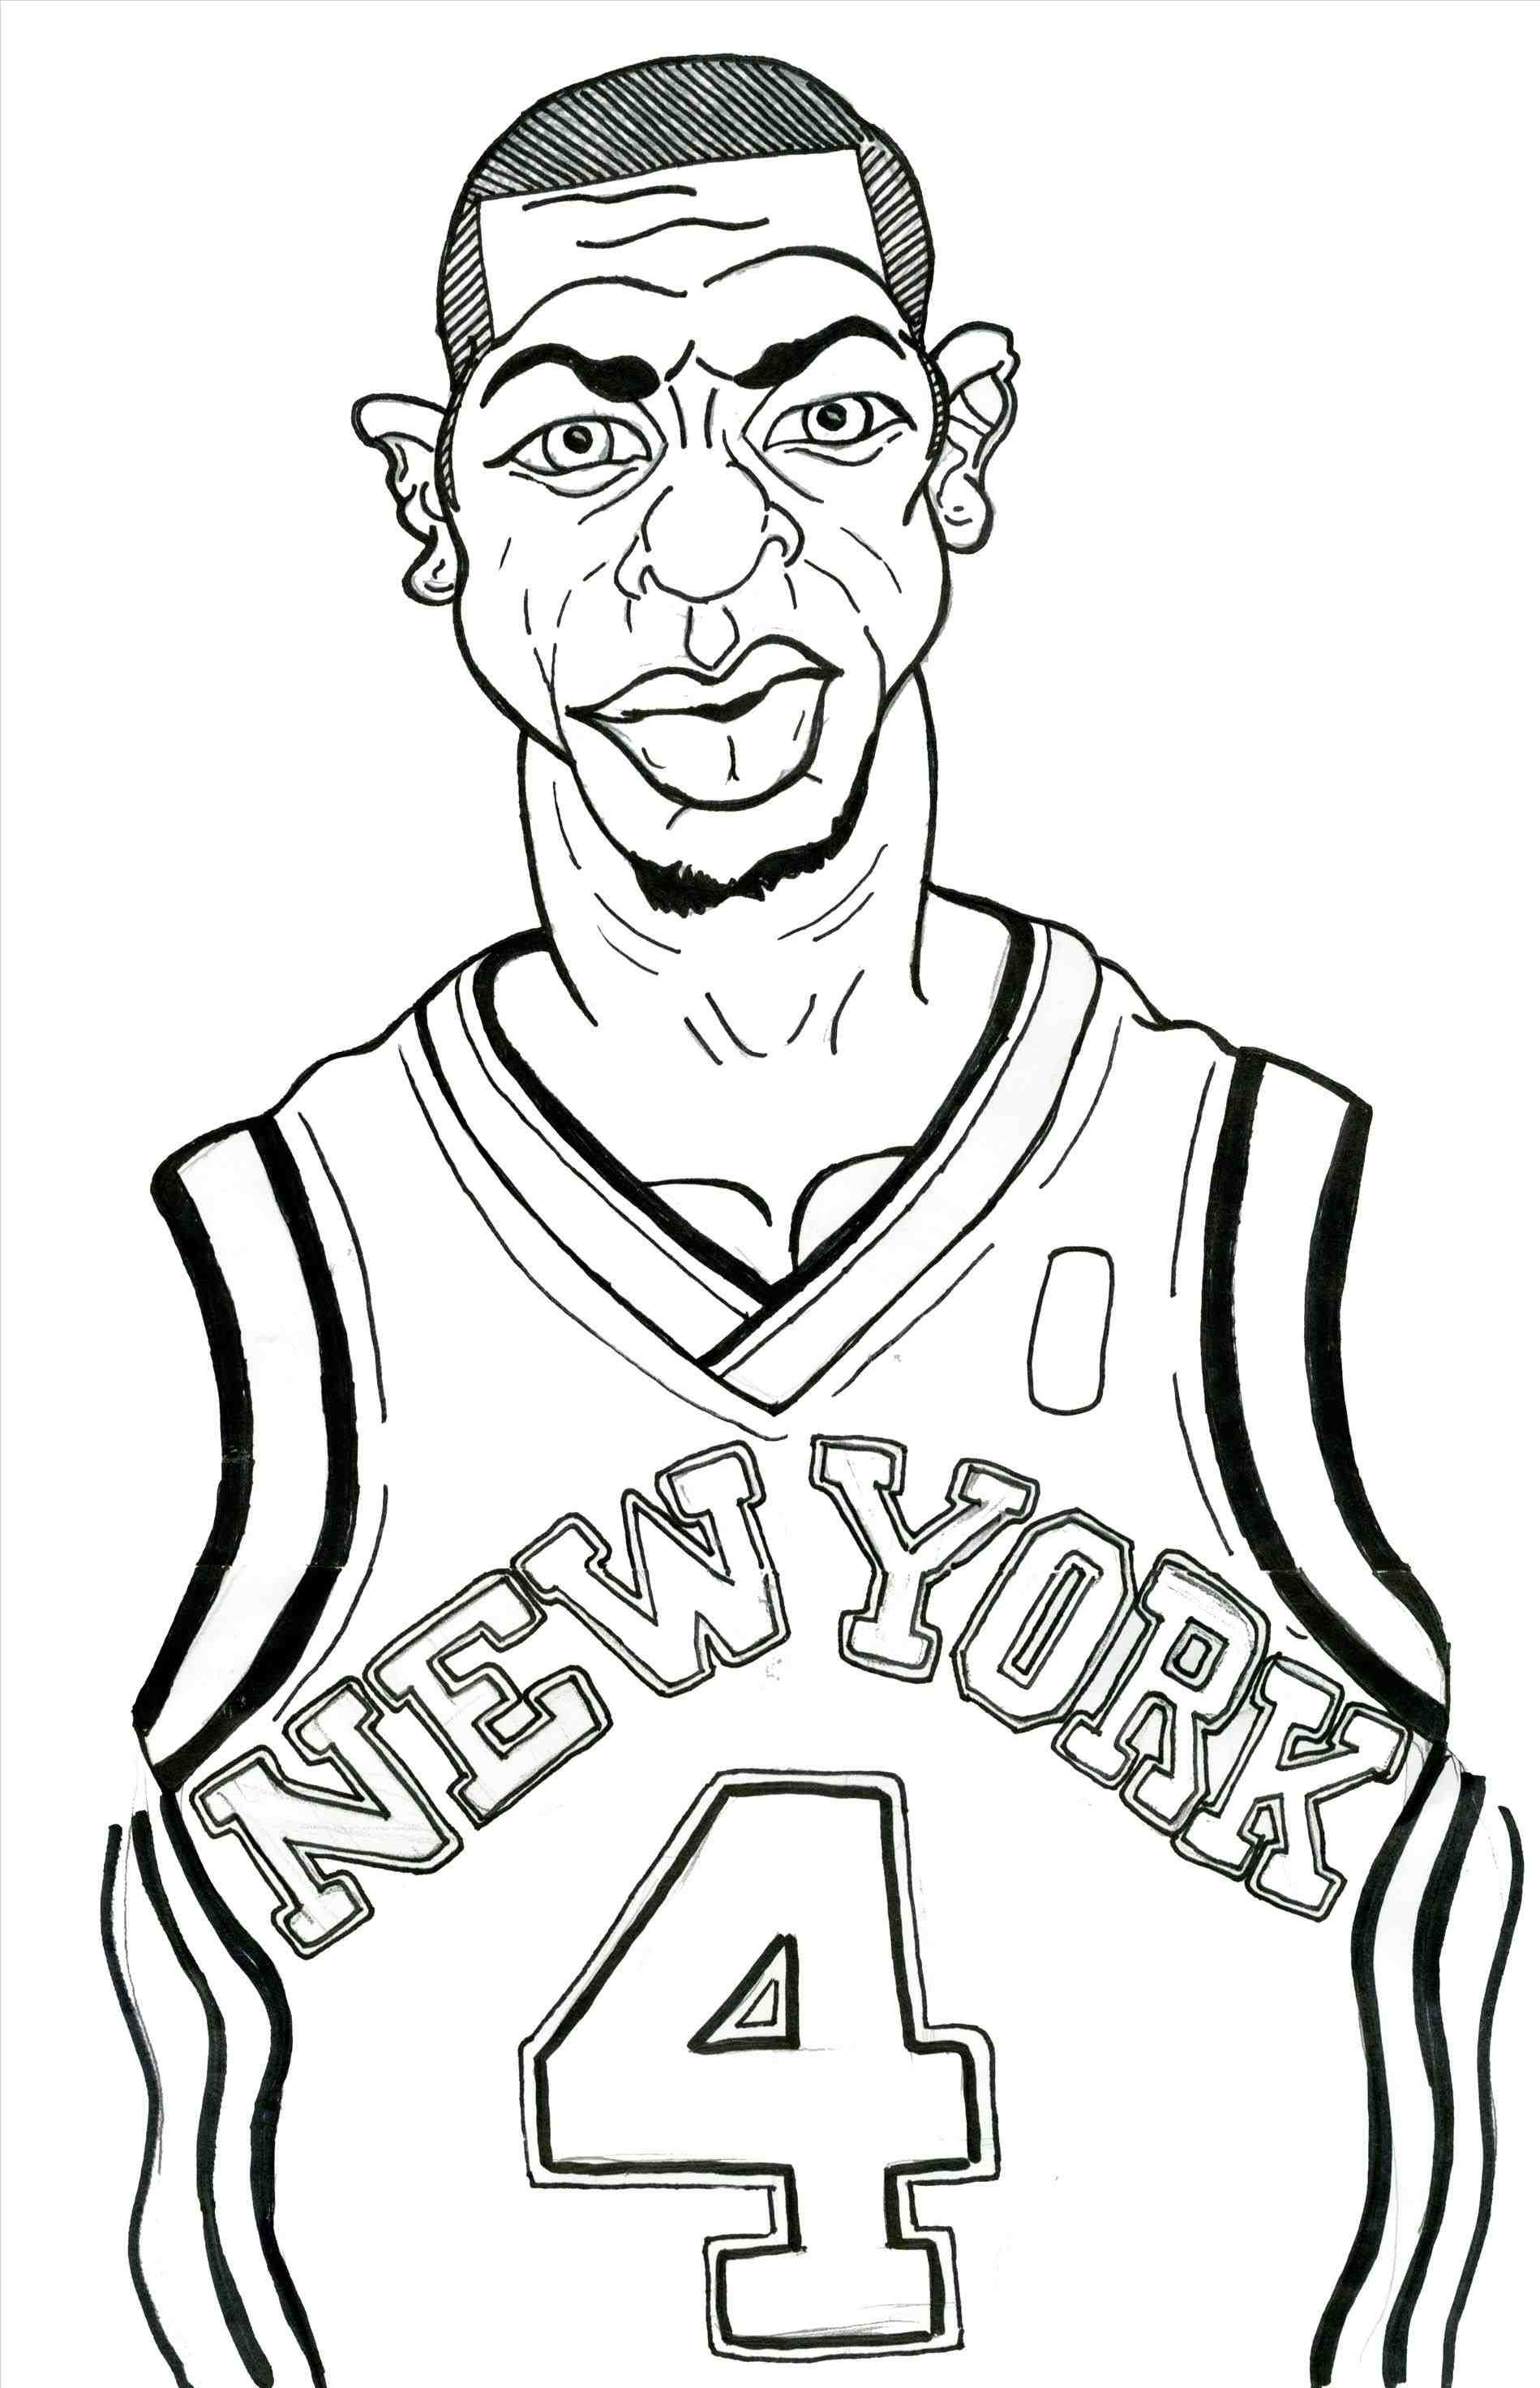 Lebron James Coloring Pages At Getcolorings